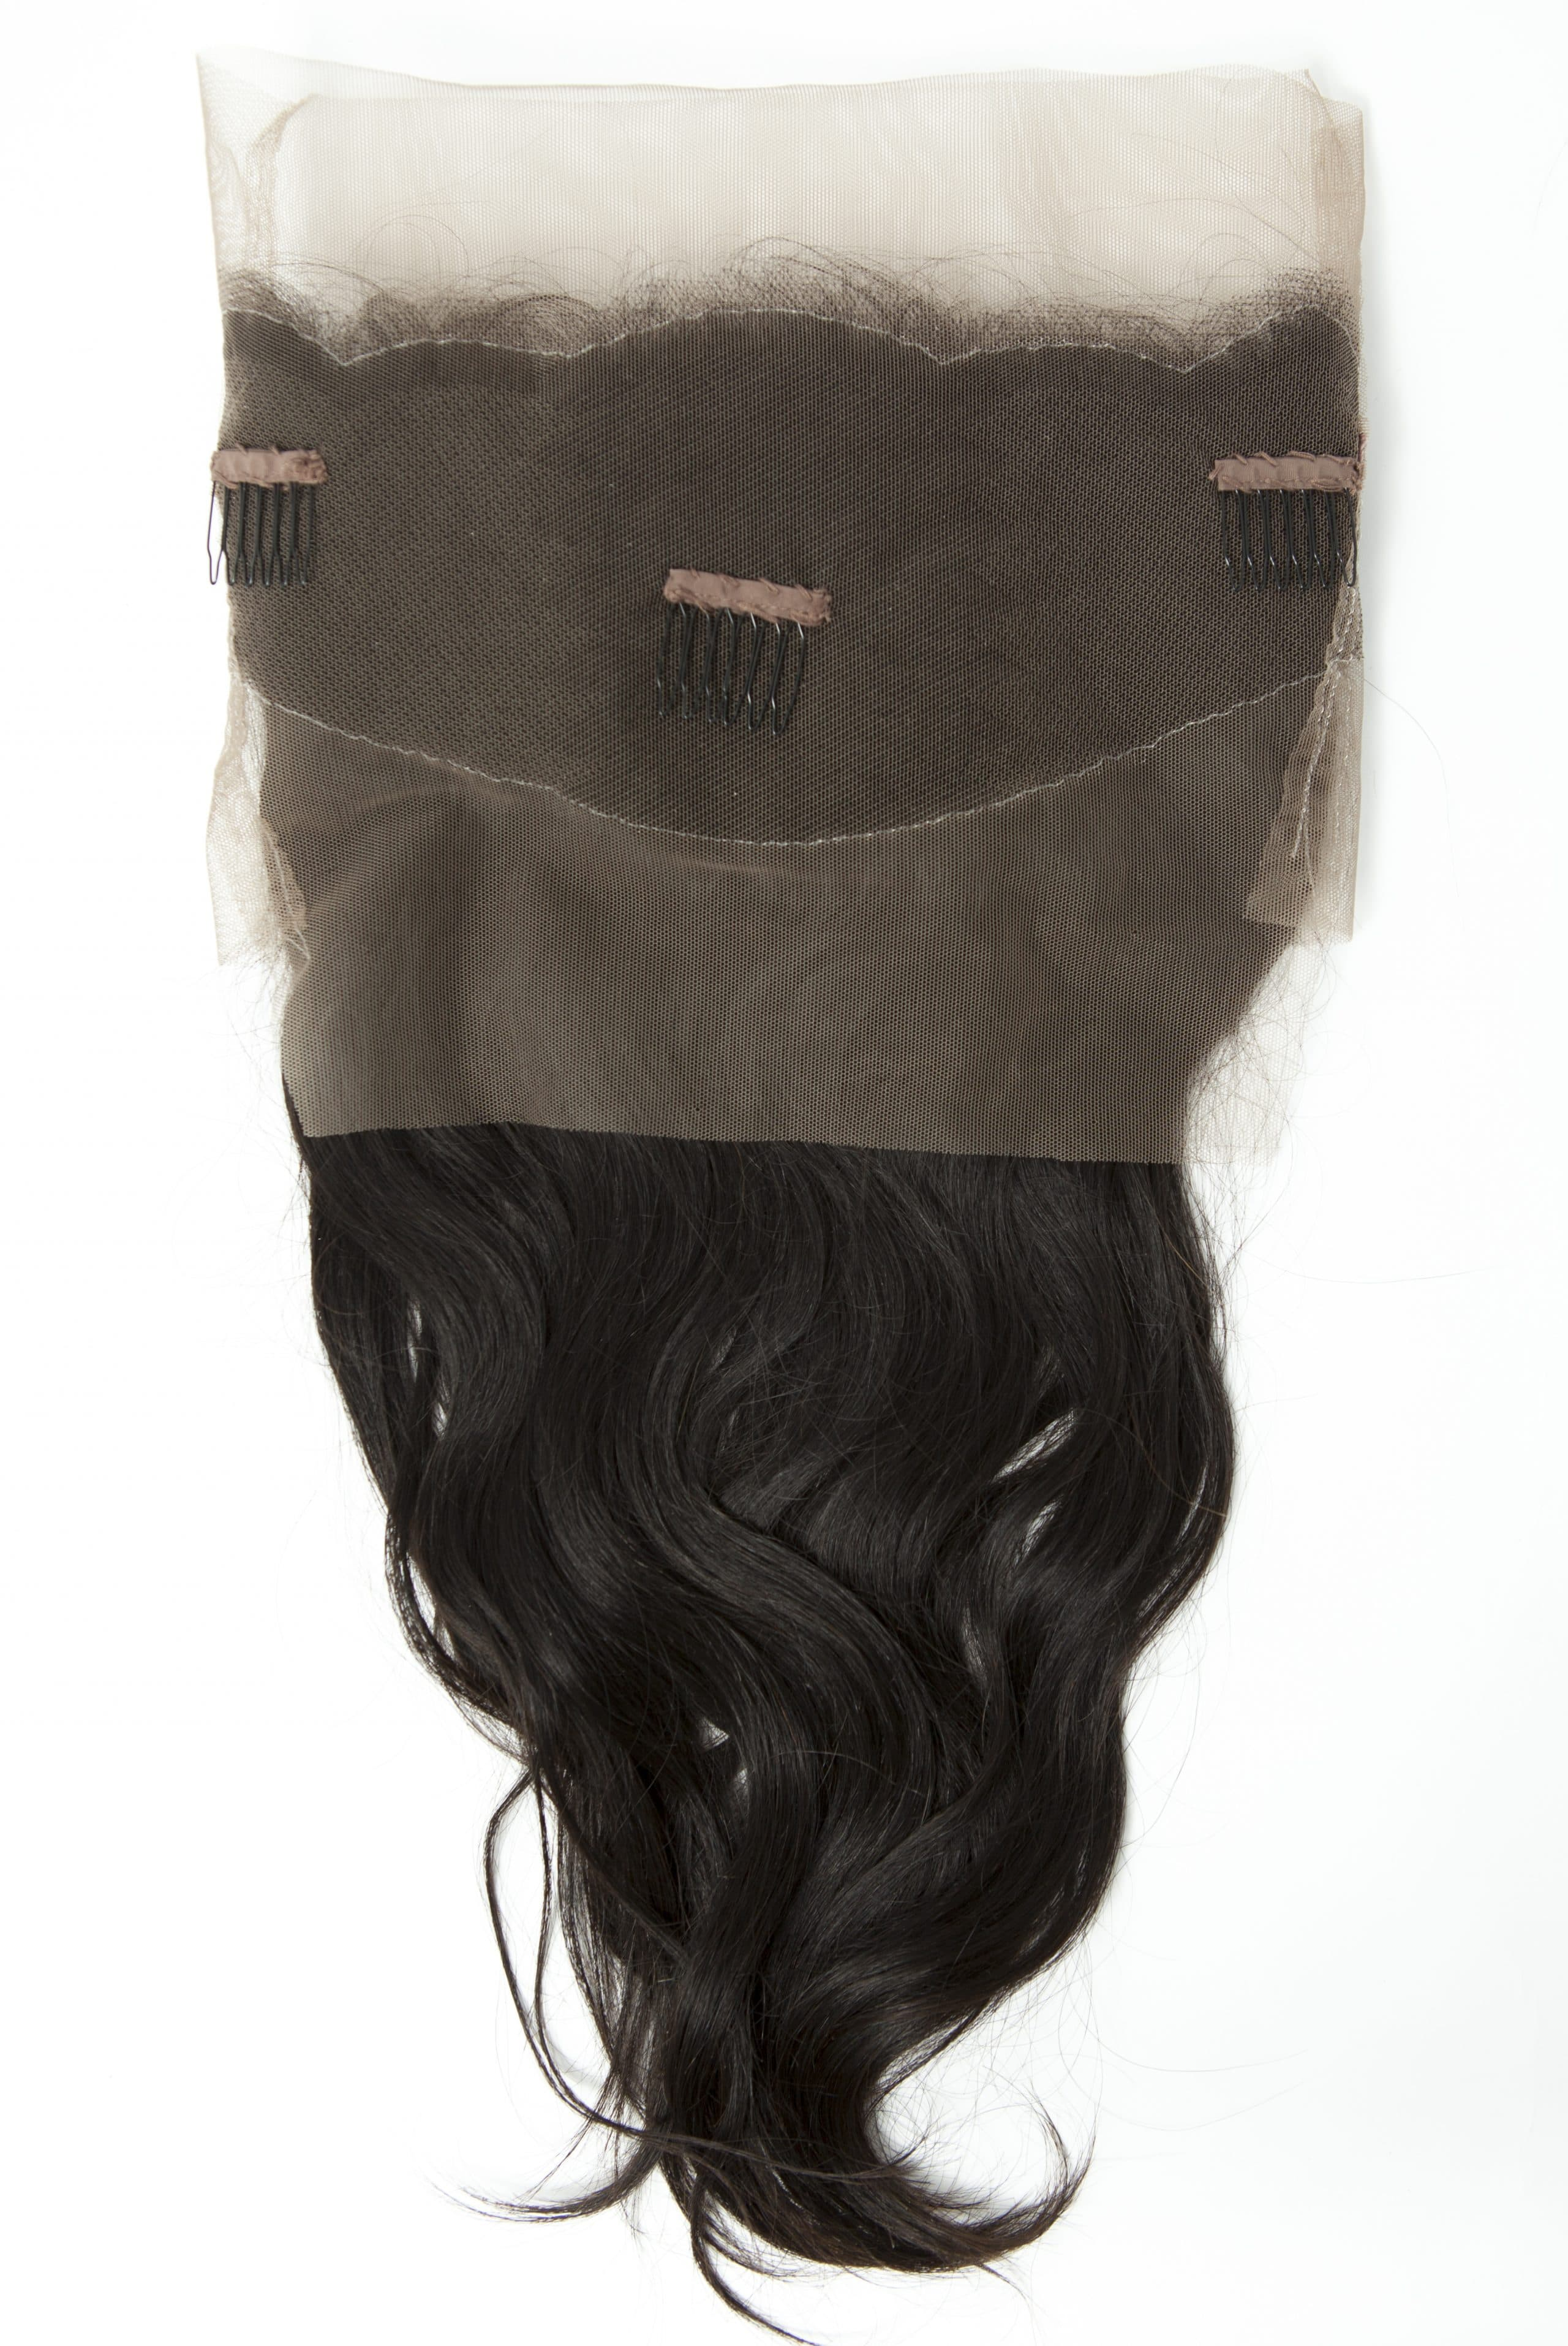 Frontal hair pieces